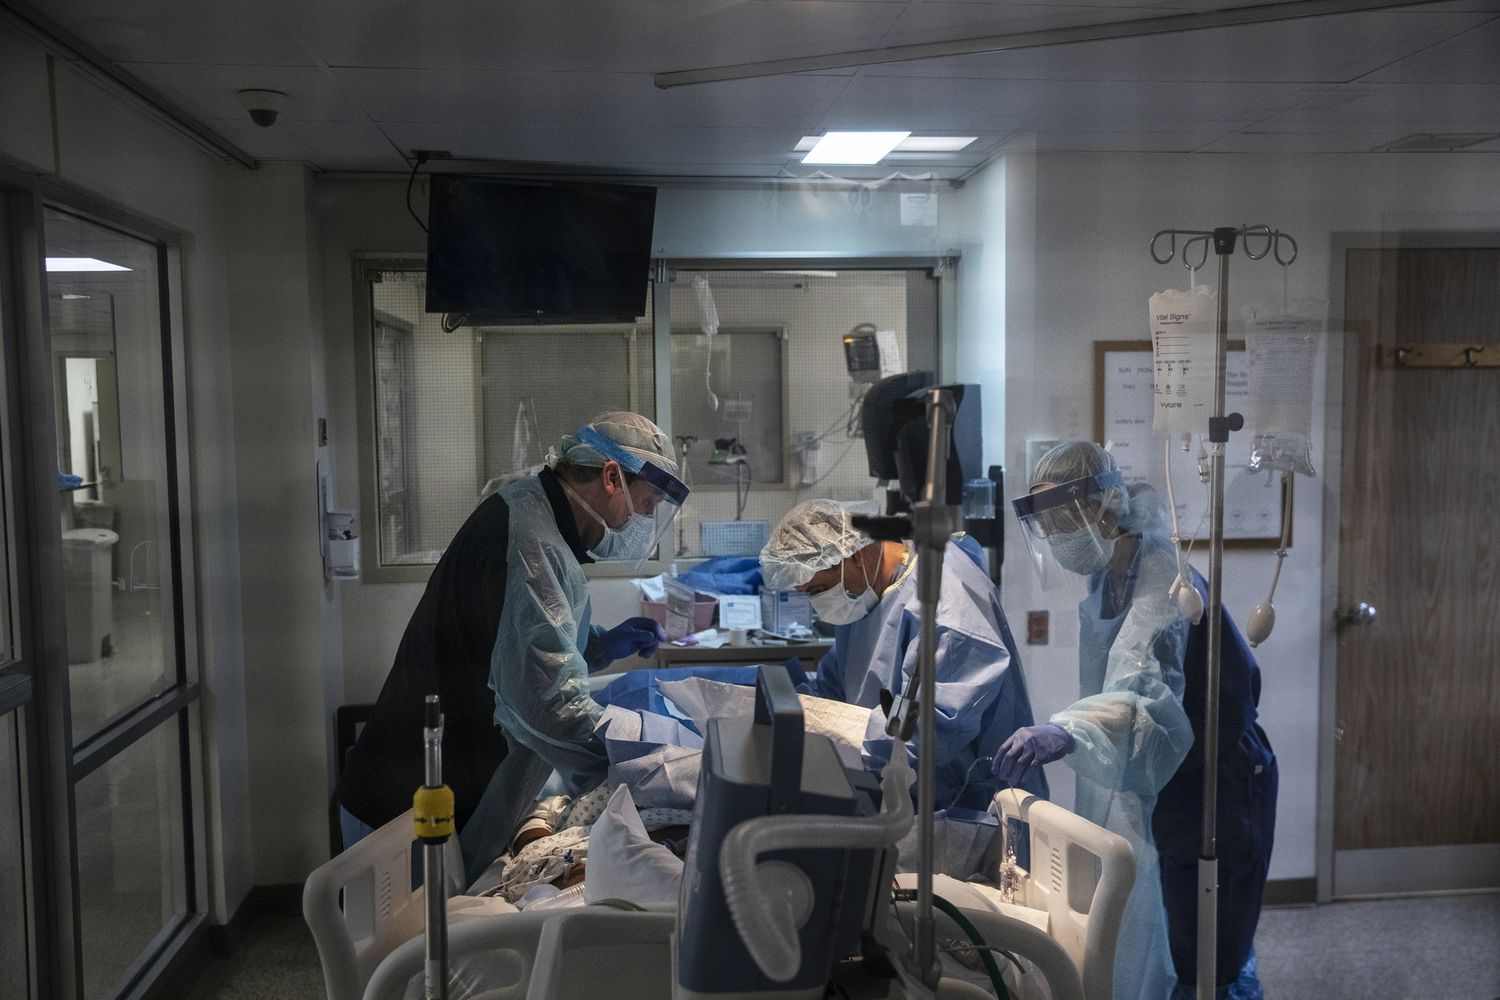 Doctors treat a patient infected with Covid-19 in the intensive care unit of the Brooklyn Hospital Center in New York on March 30. (Victor J. Blue/The New York Times)